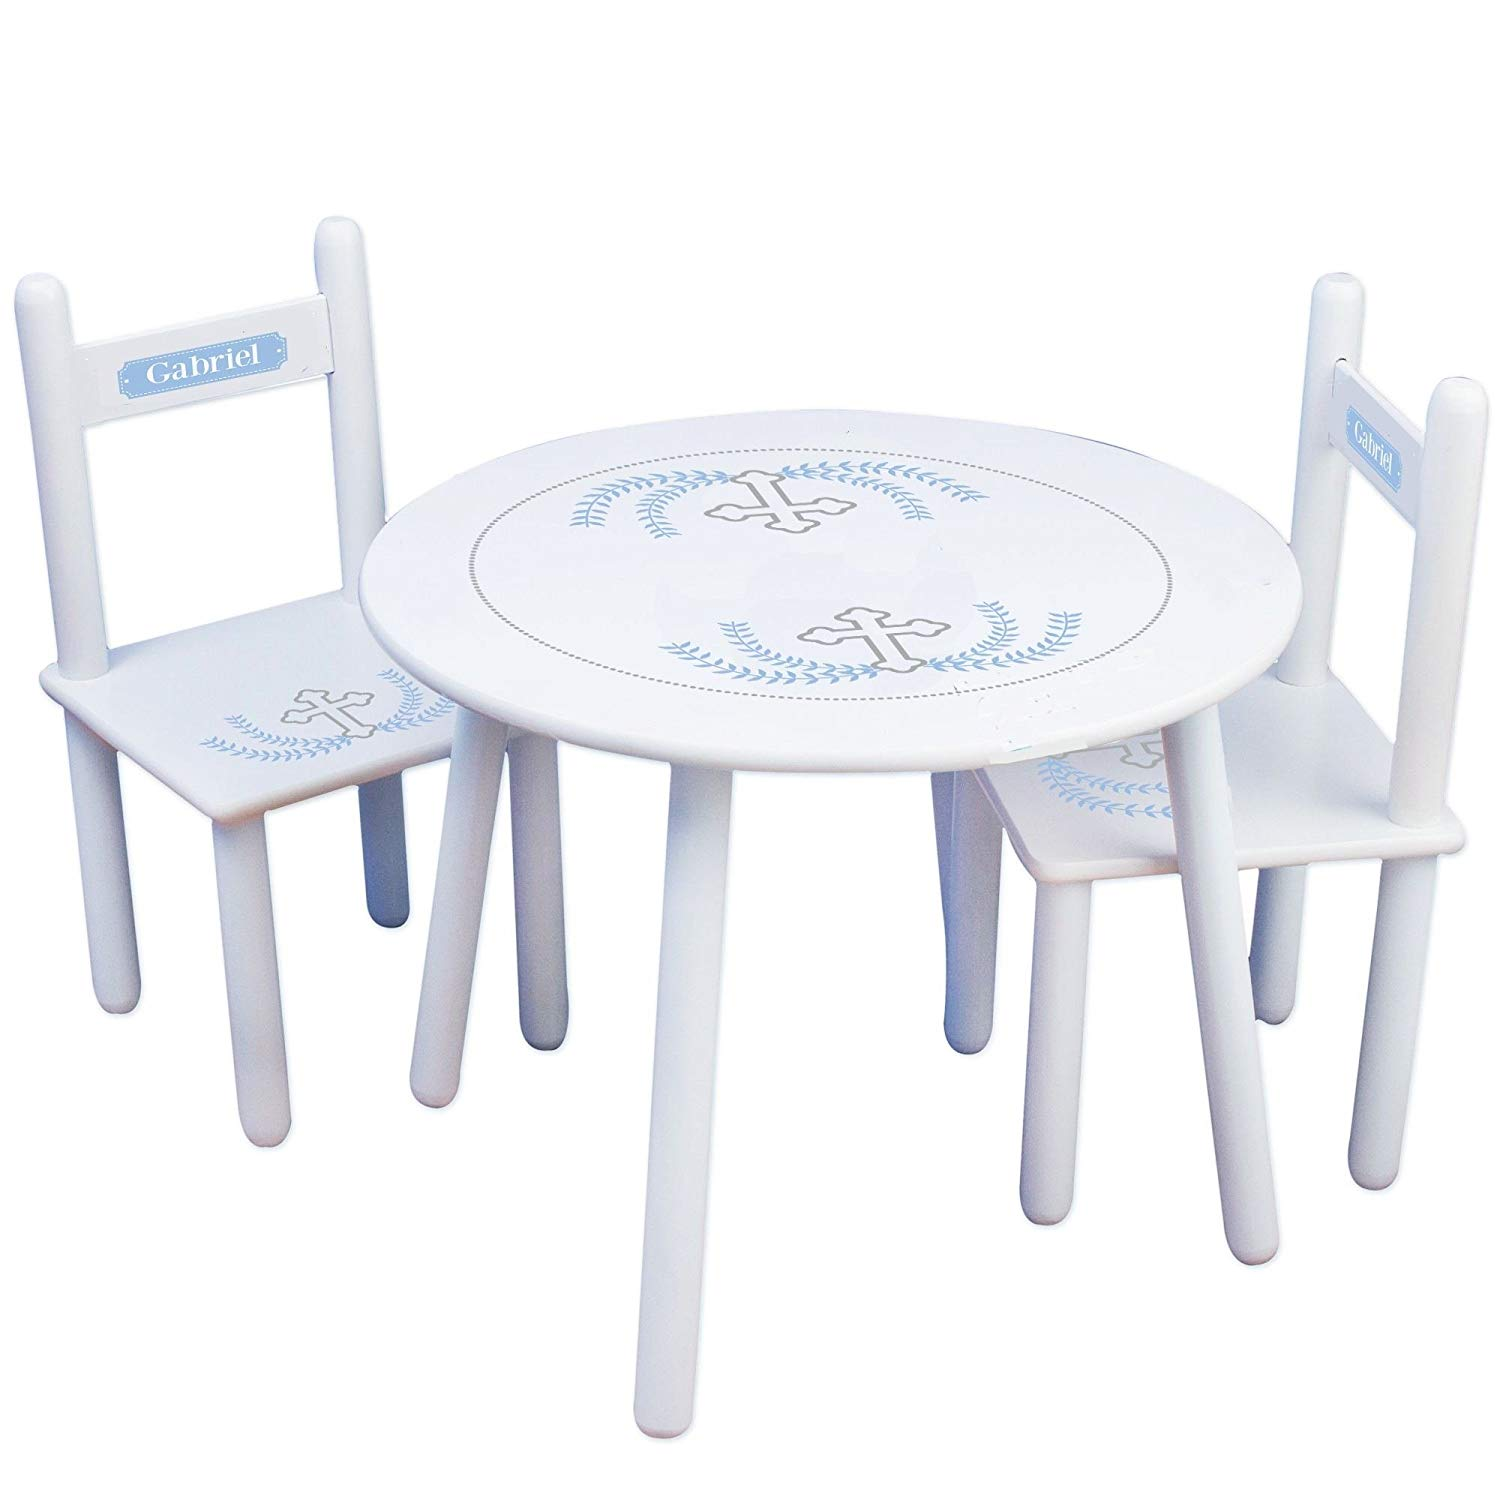 MyBambino Personalized Cross Garland Light blue Childrens Table And Chair Set